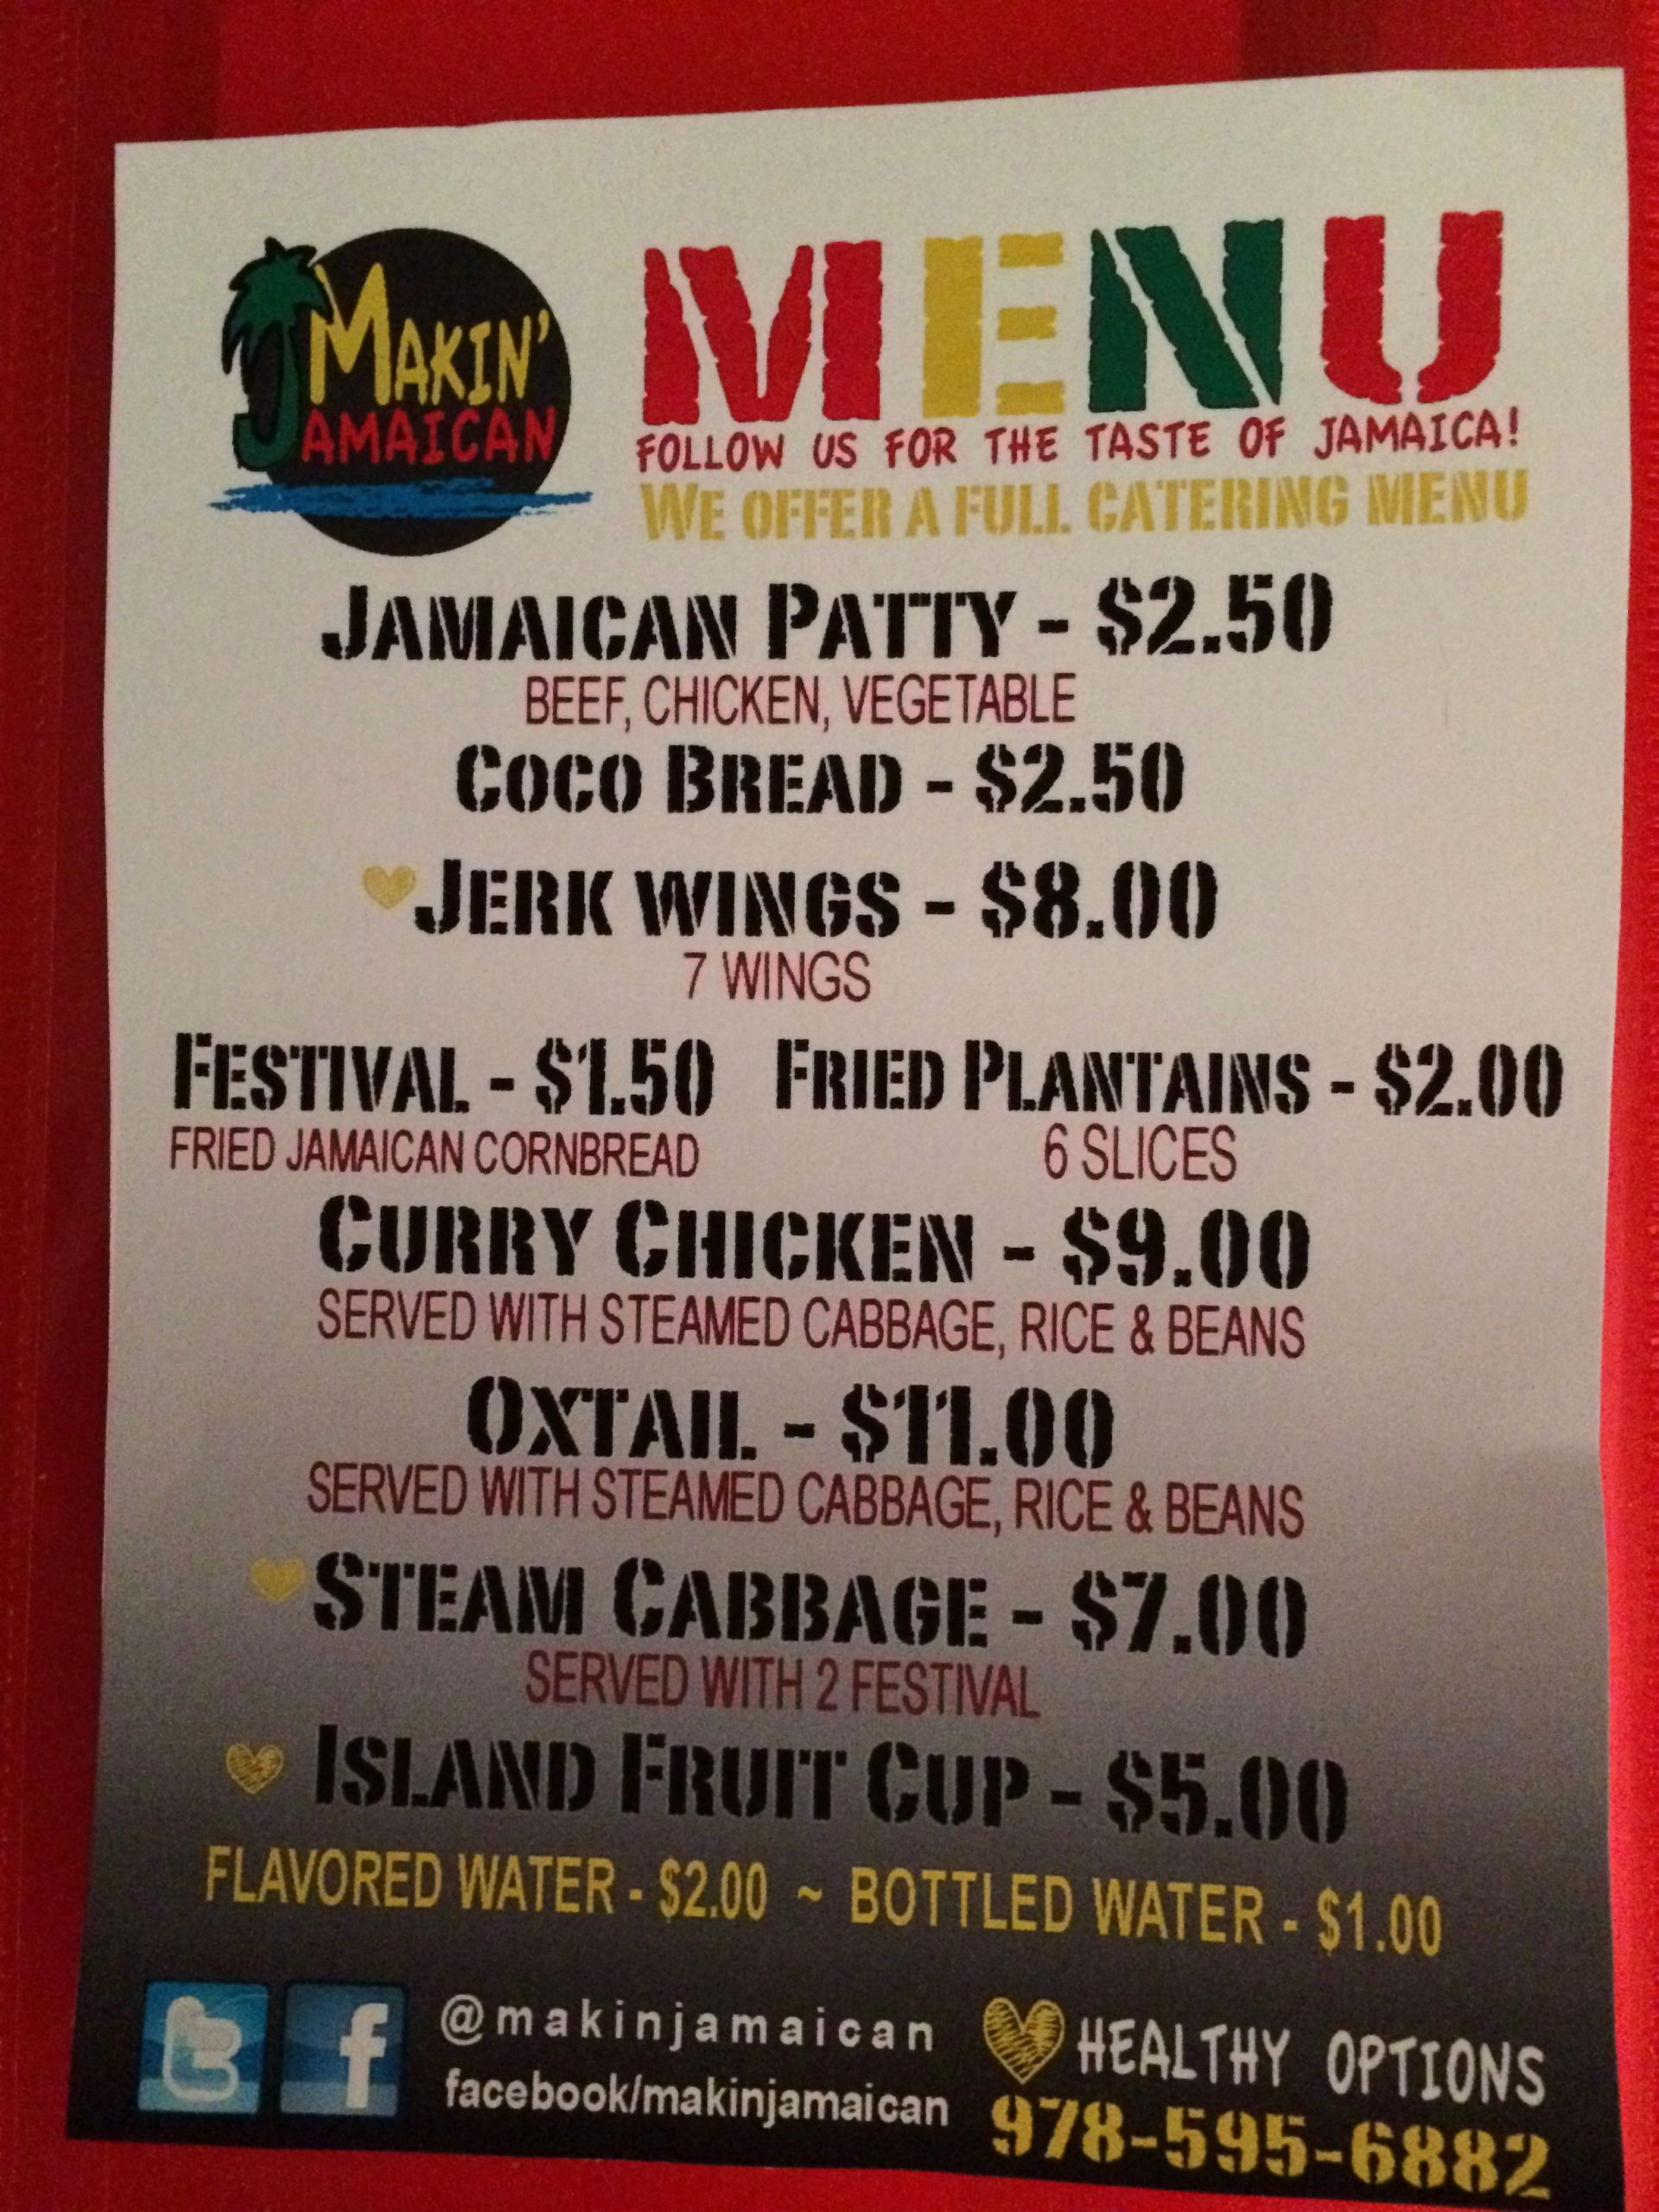 Soul Food Menu Template Luxury Food Truck Menu Design Boston Food Truck Makin Jamaican